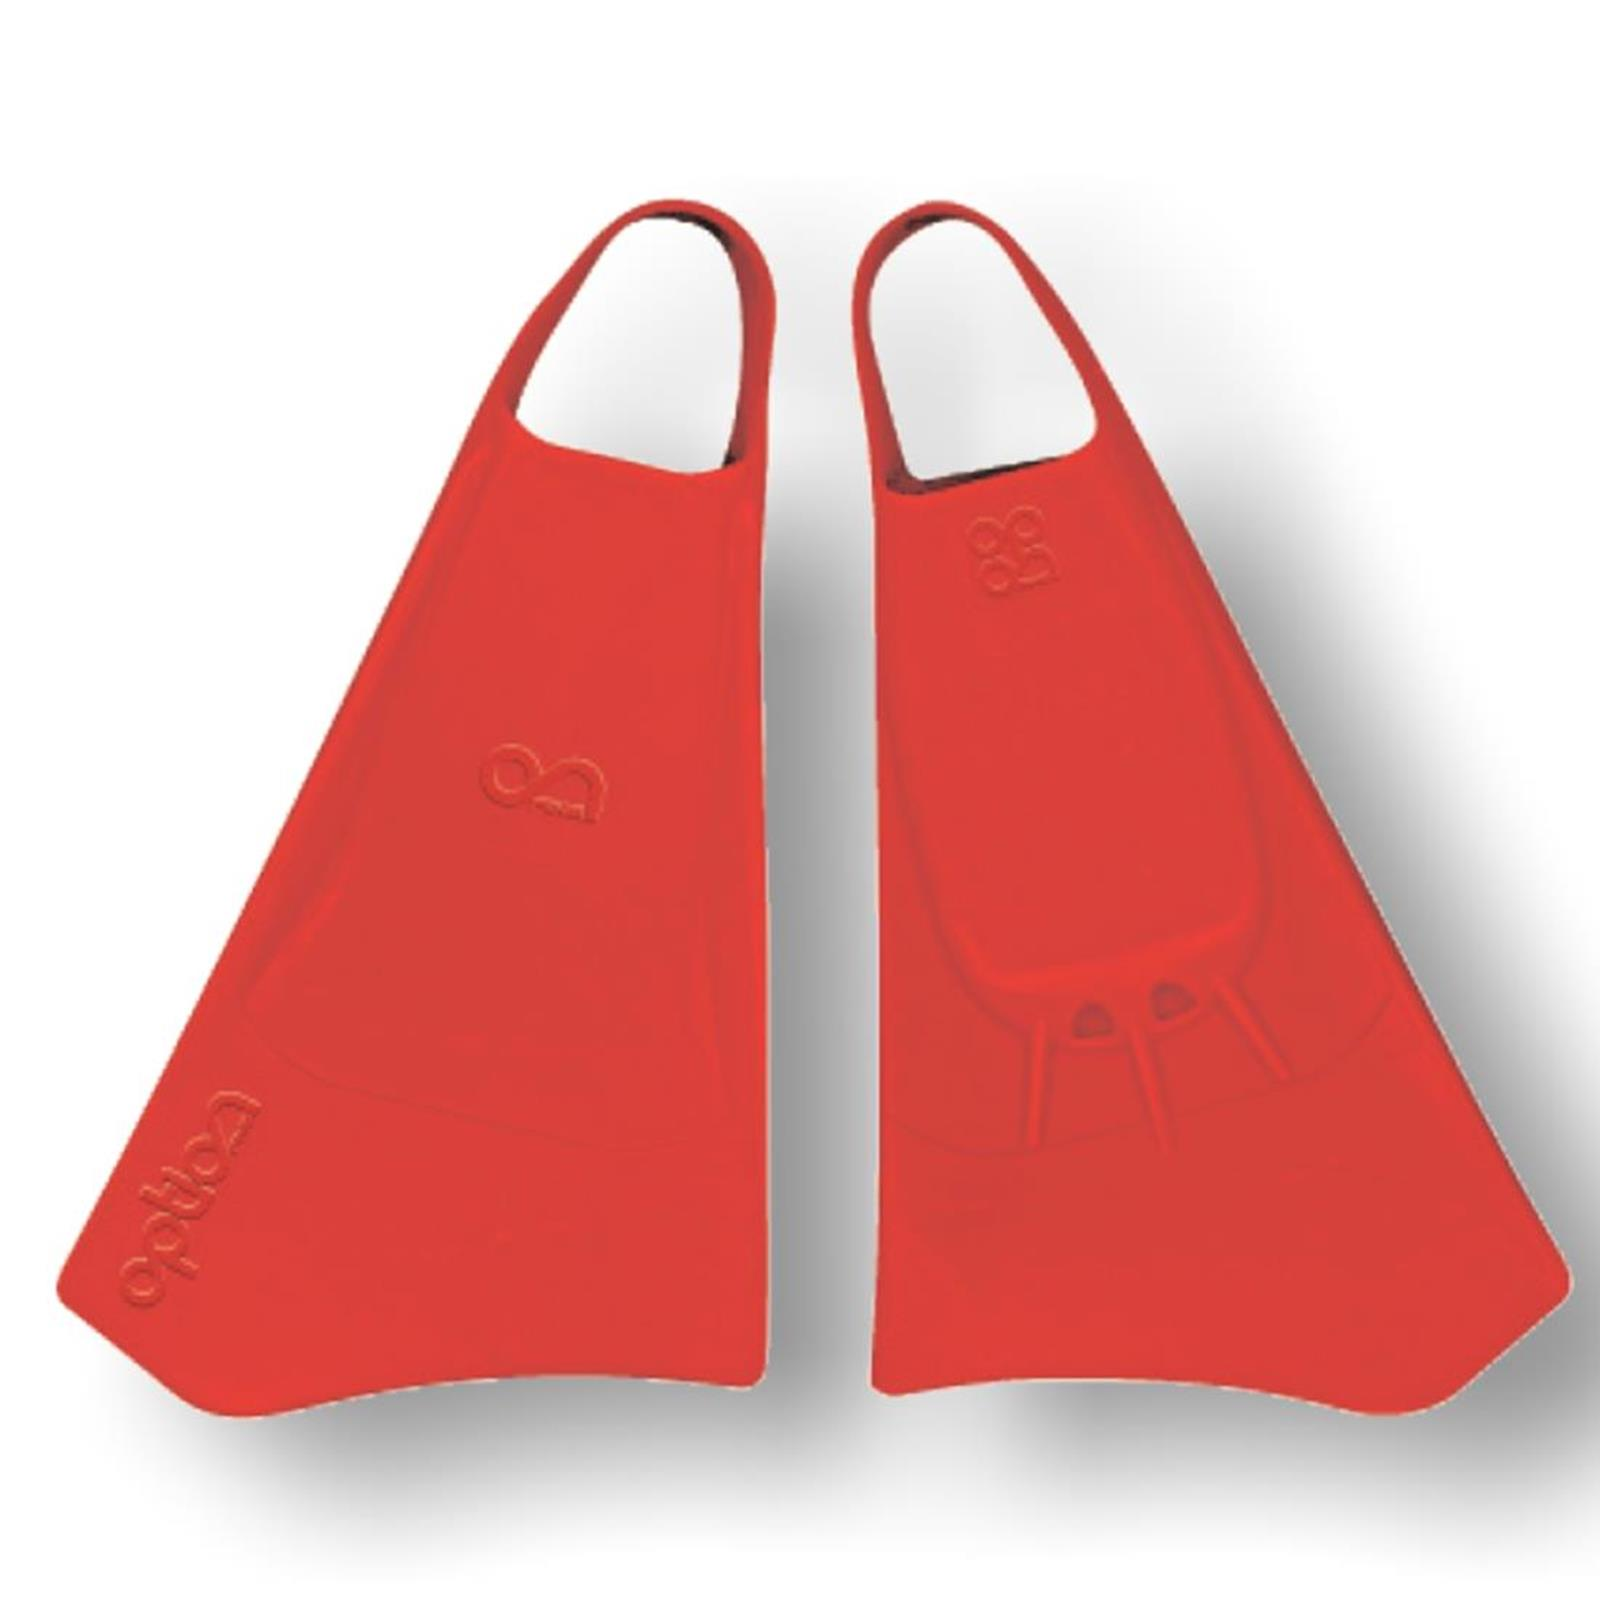 Bodyboard Flosse OPTION Gr XL  44-46 Red